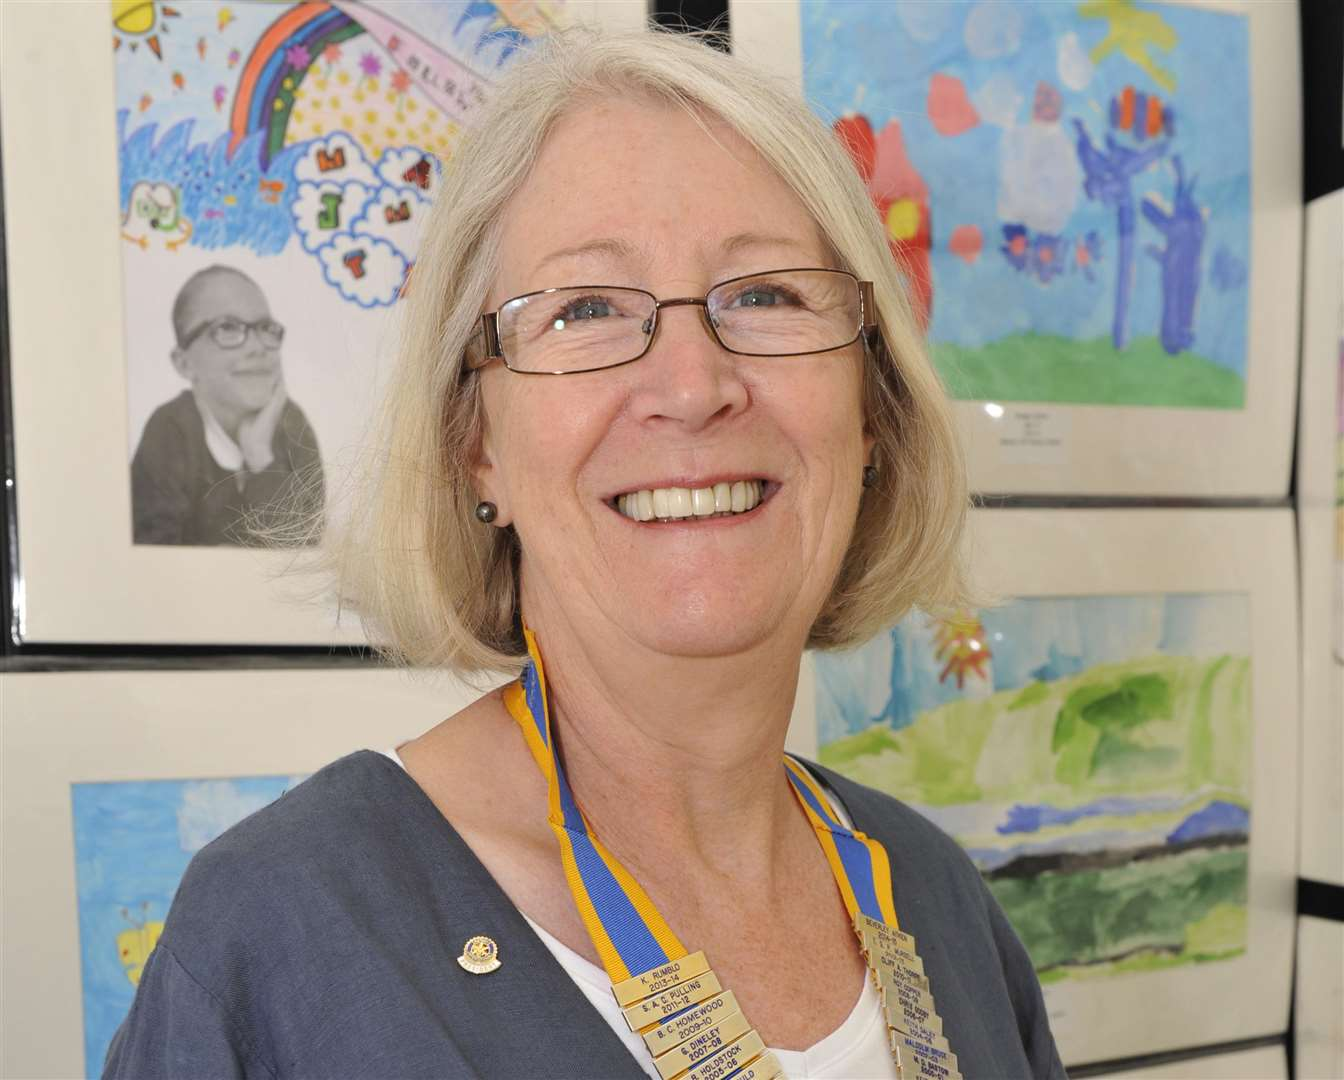 Beverley Aitken, who is the current treasurer of the Margate Rotary Club, and was also its president between 2014-15. Picture: Tony Flashman